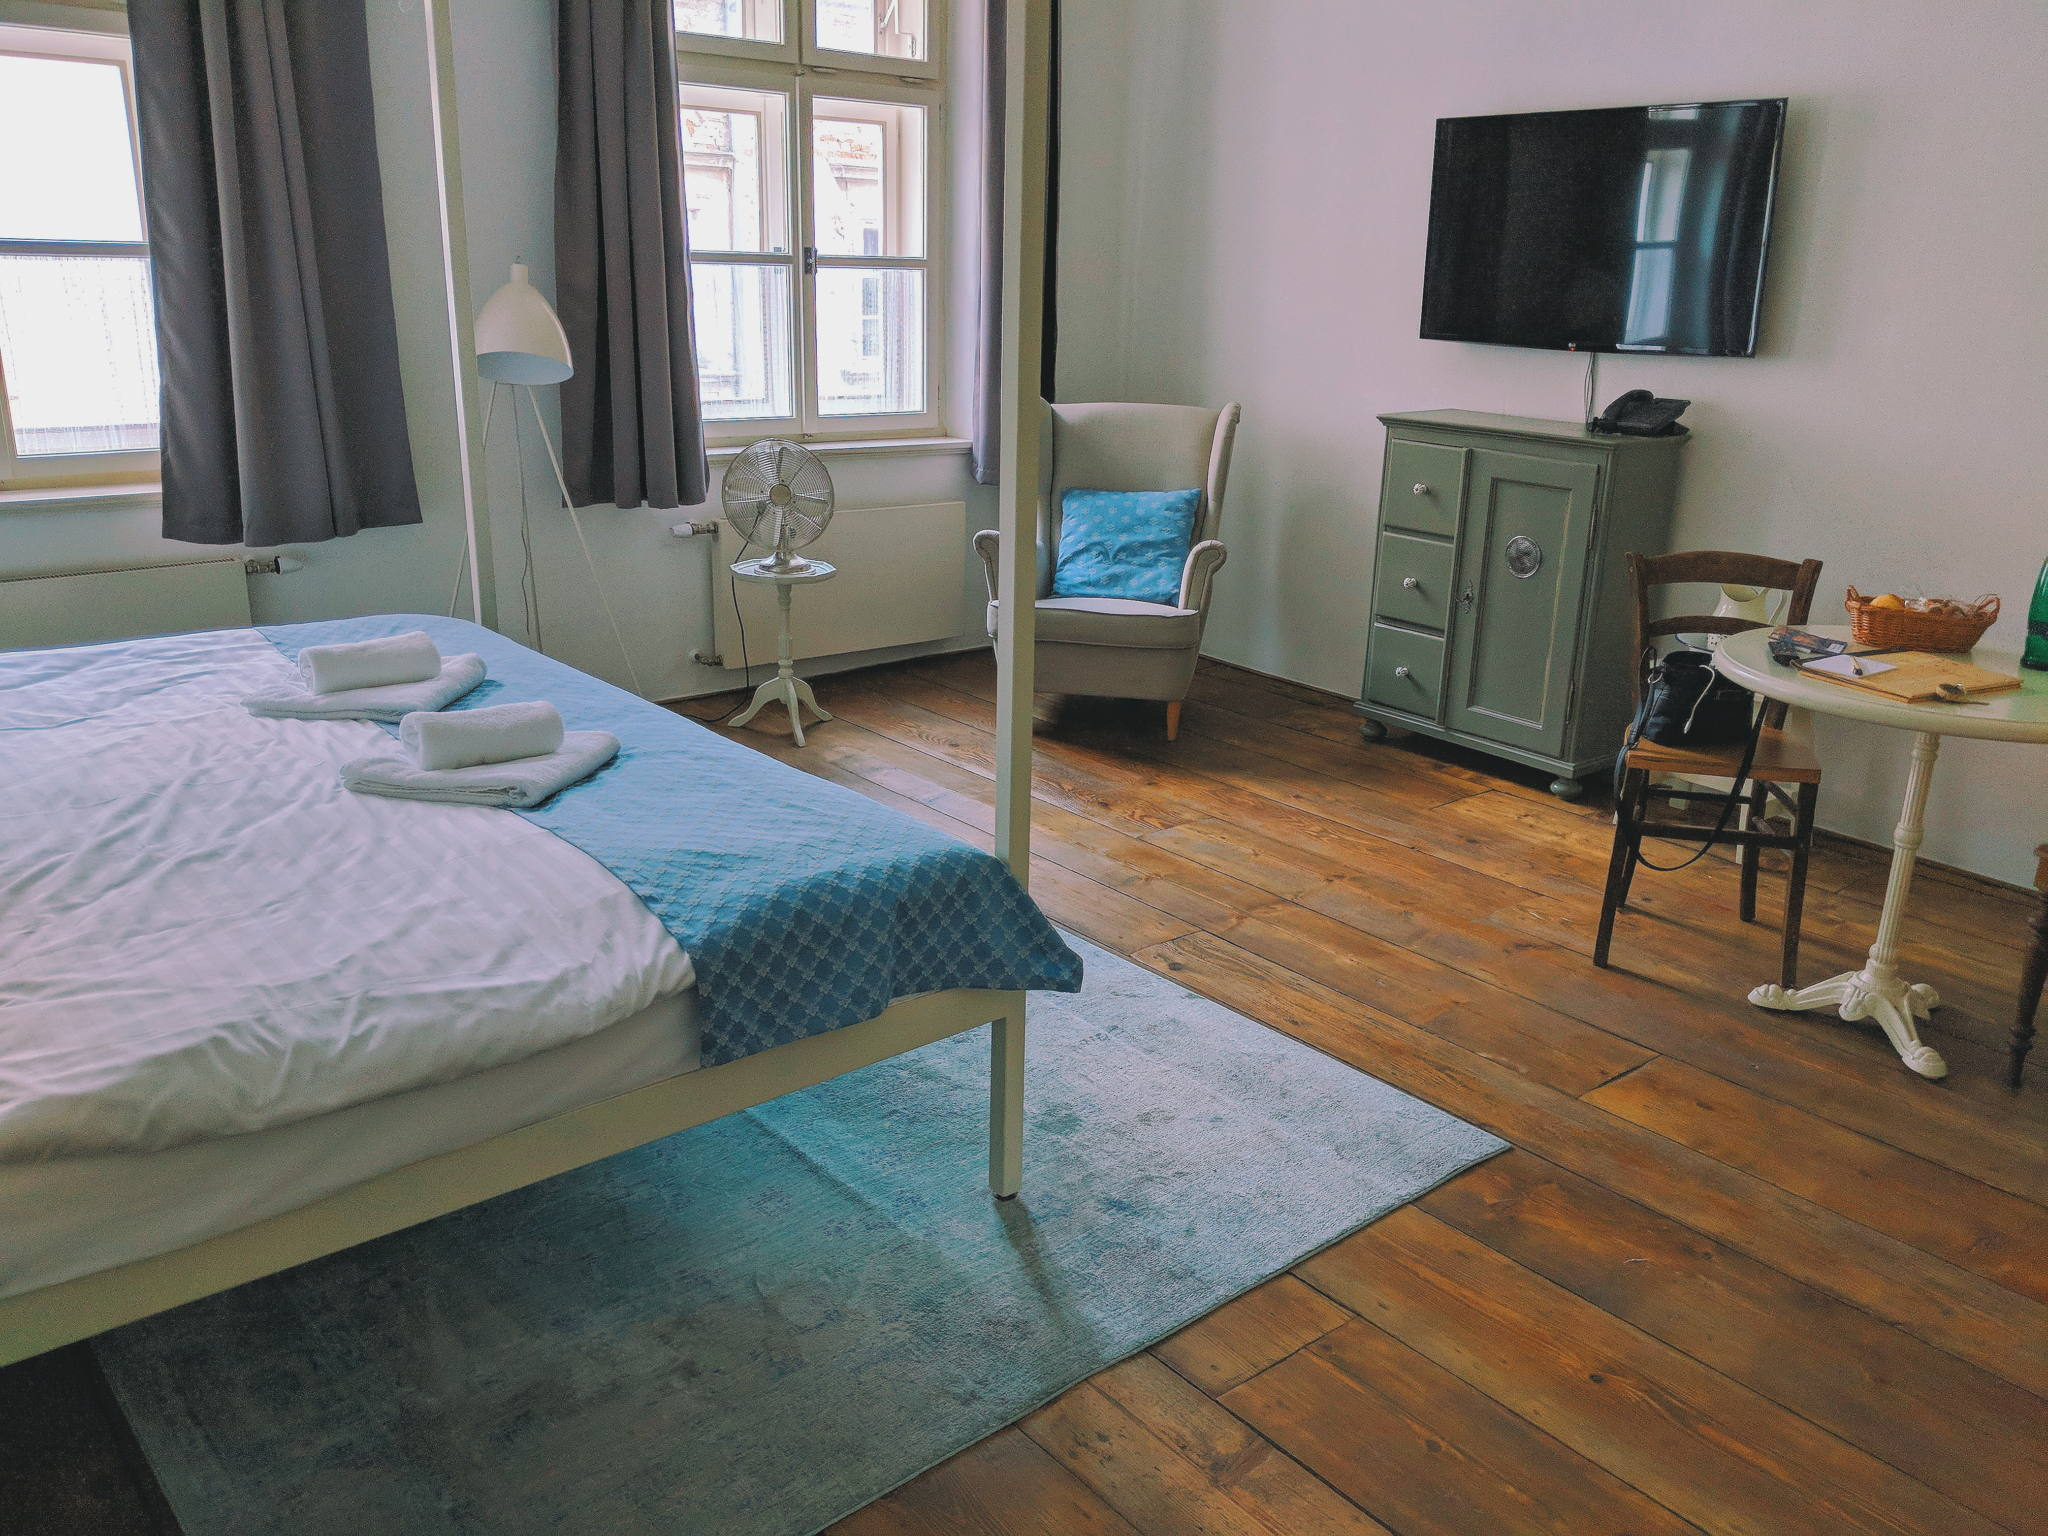 Staying at Ms Sophie's in Olomouc, Czech Republic: An Adorable Boutique Hotel 4